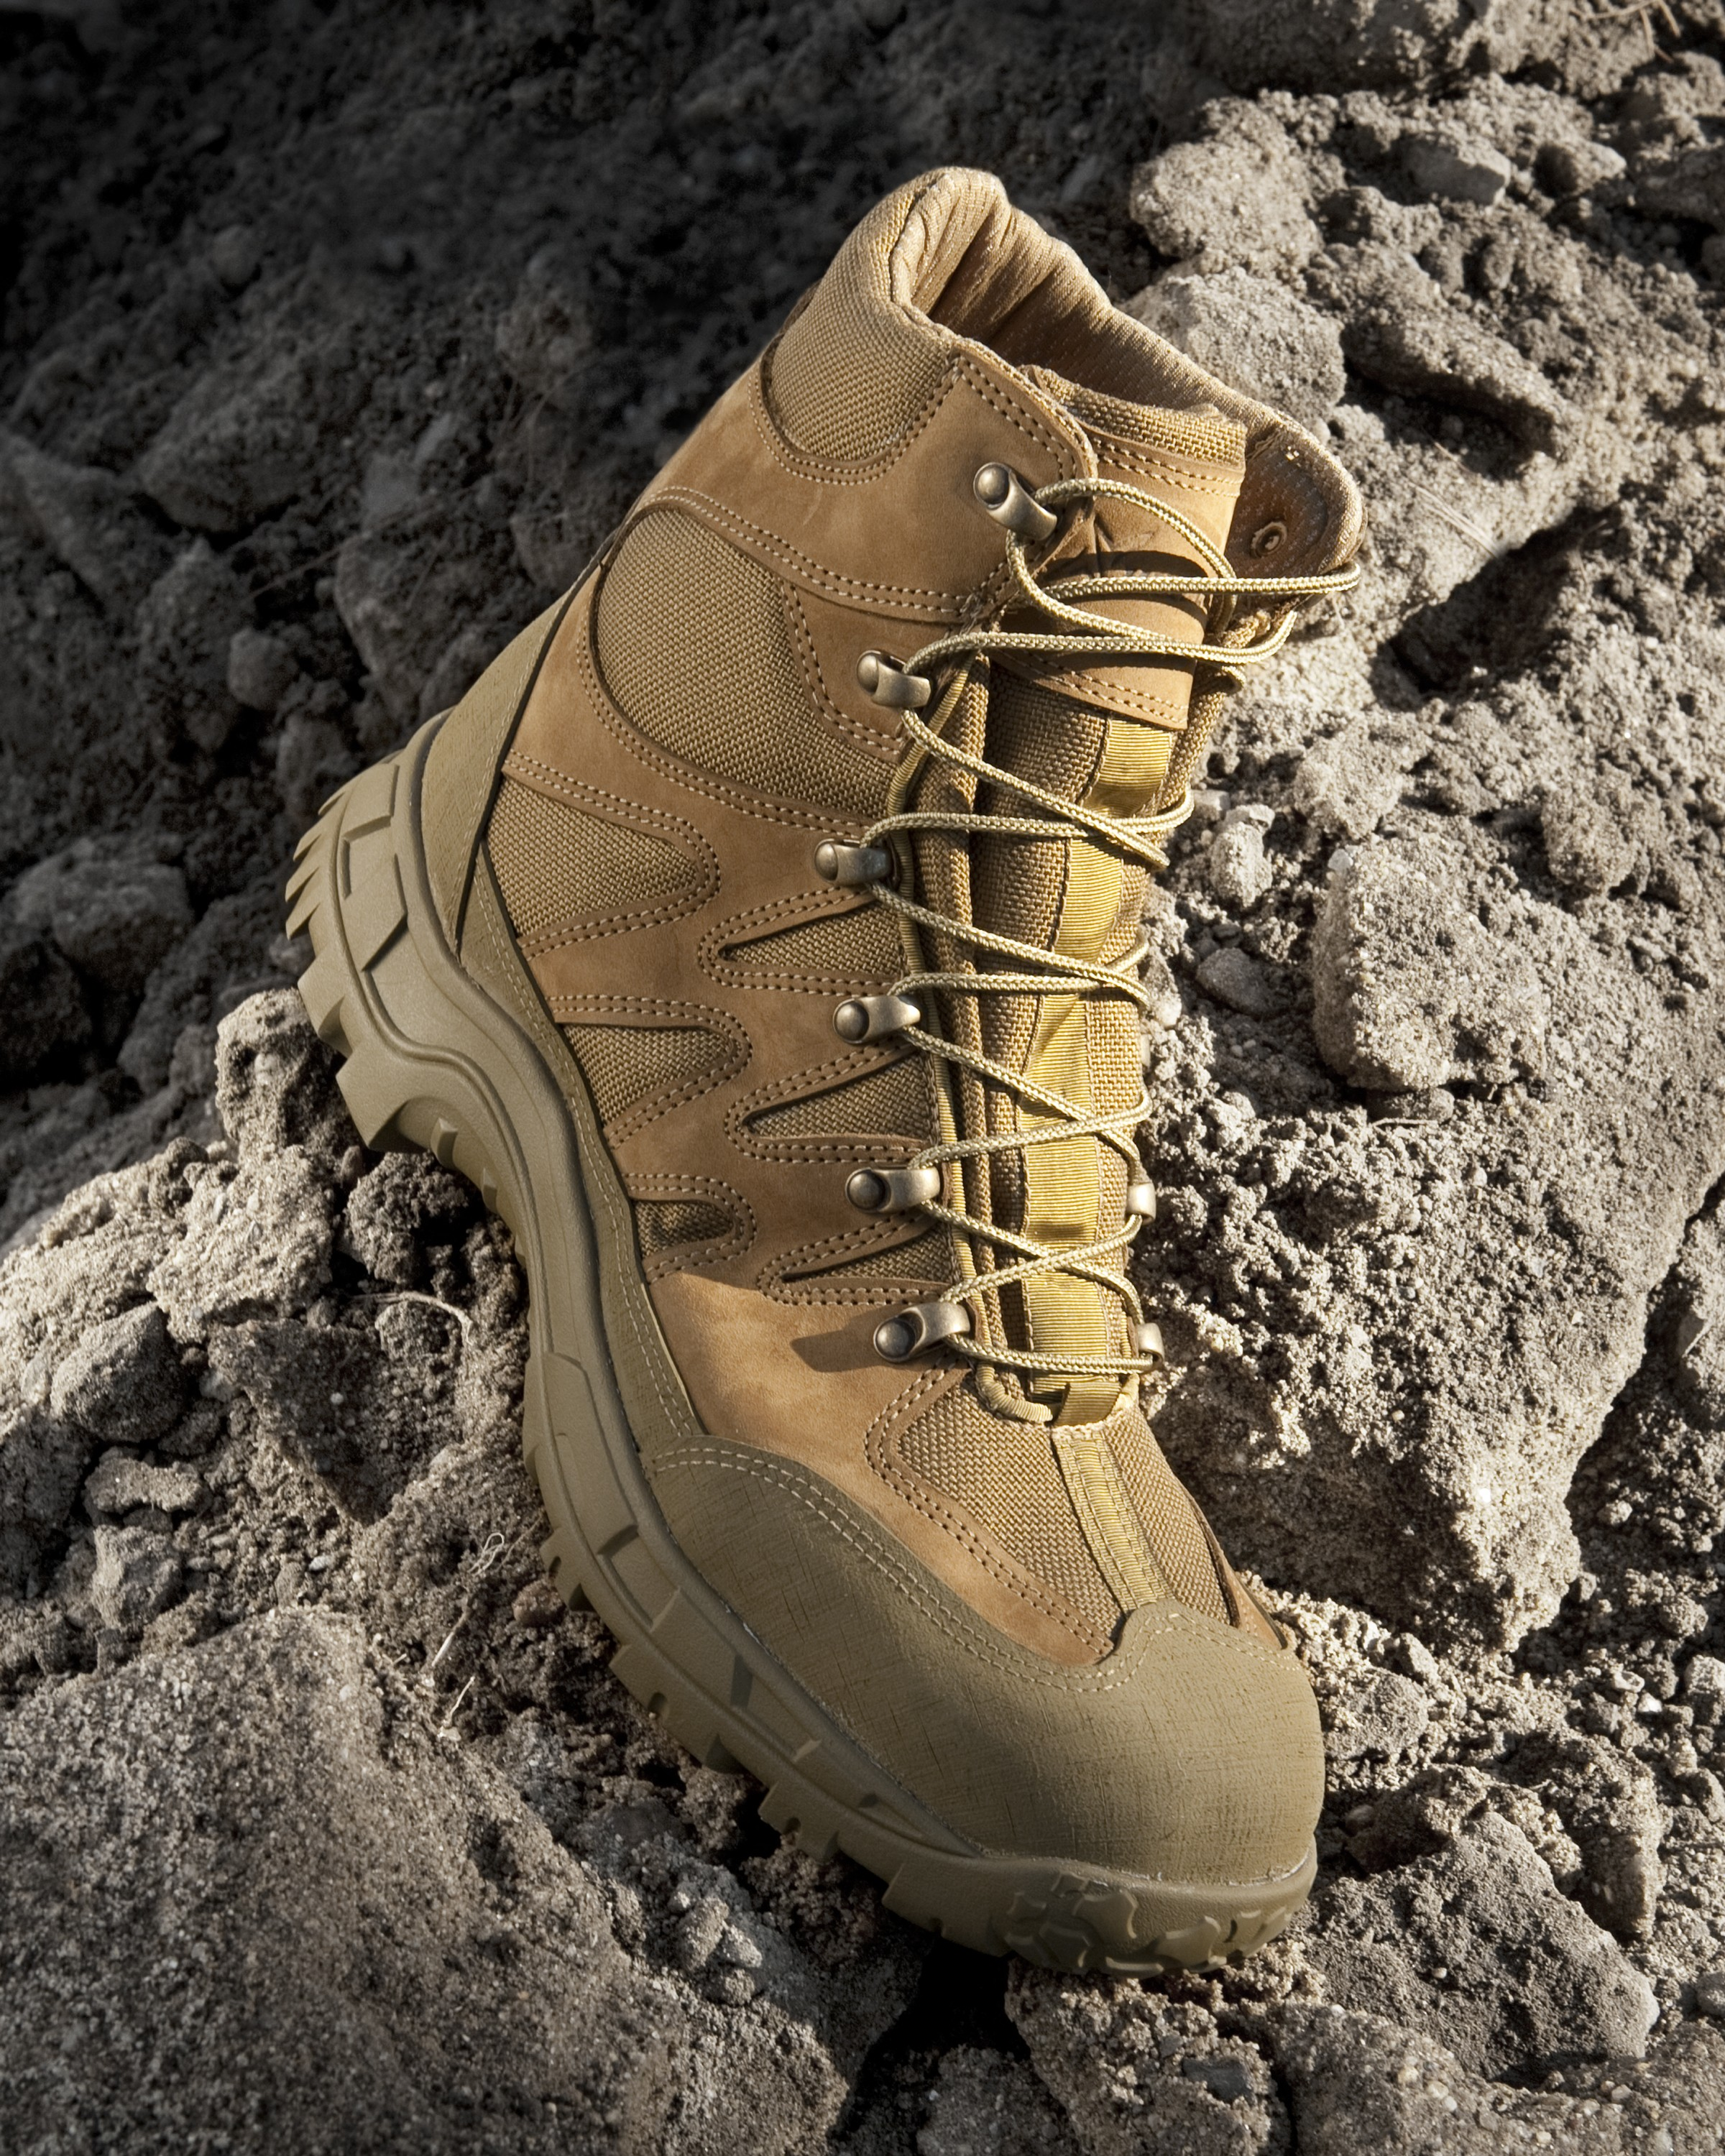 The Next Step In Soldier Footwear Article The United